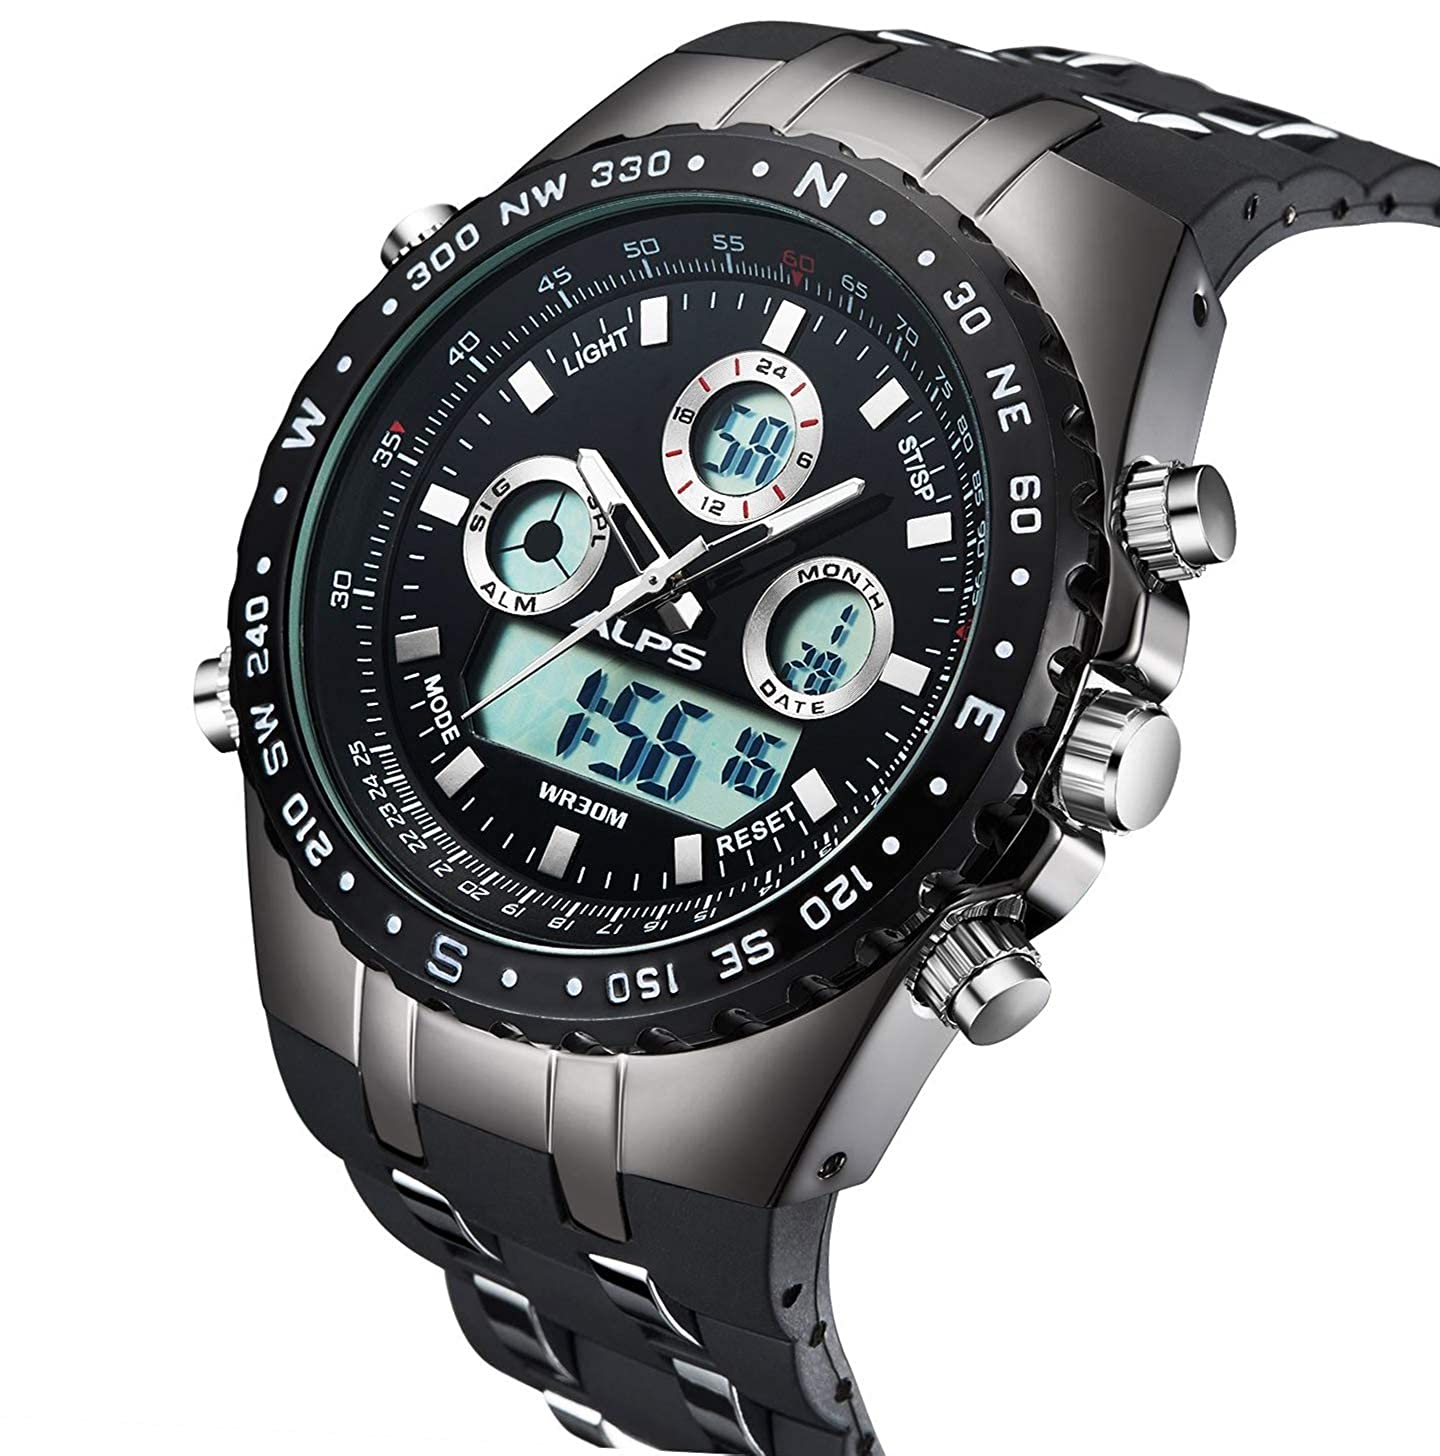 f9260c0dcdc Amazon.com  Watch Mens Outdoor Military Sports Digital Large Face Watch